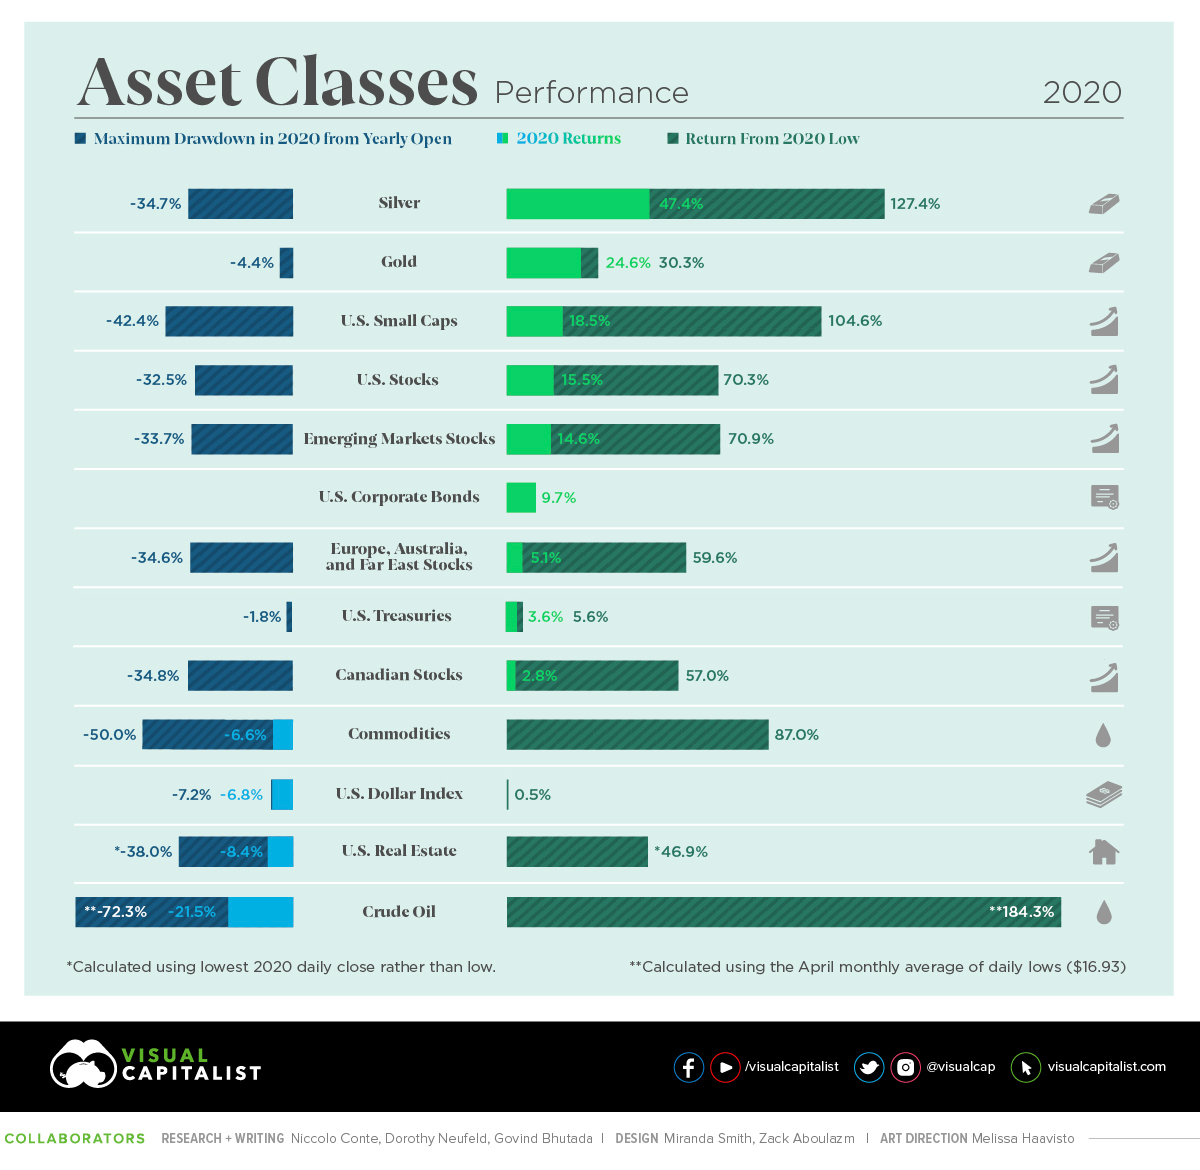 Major Asset Class Returns in 2020